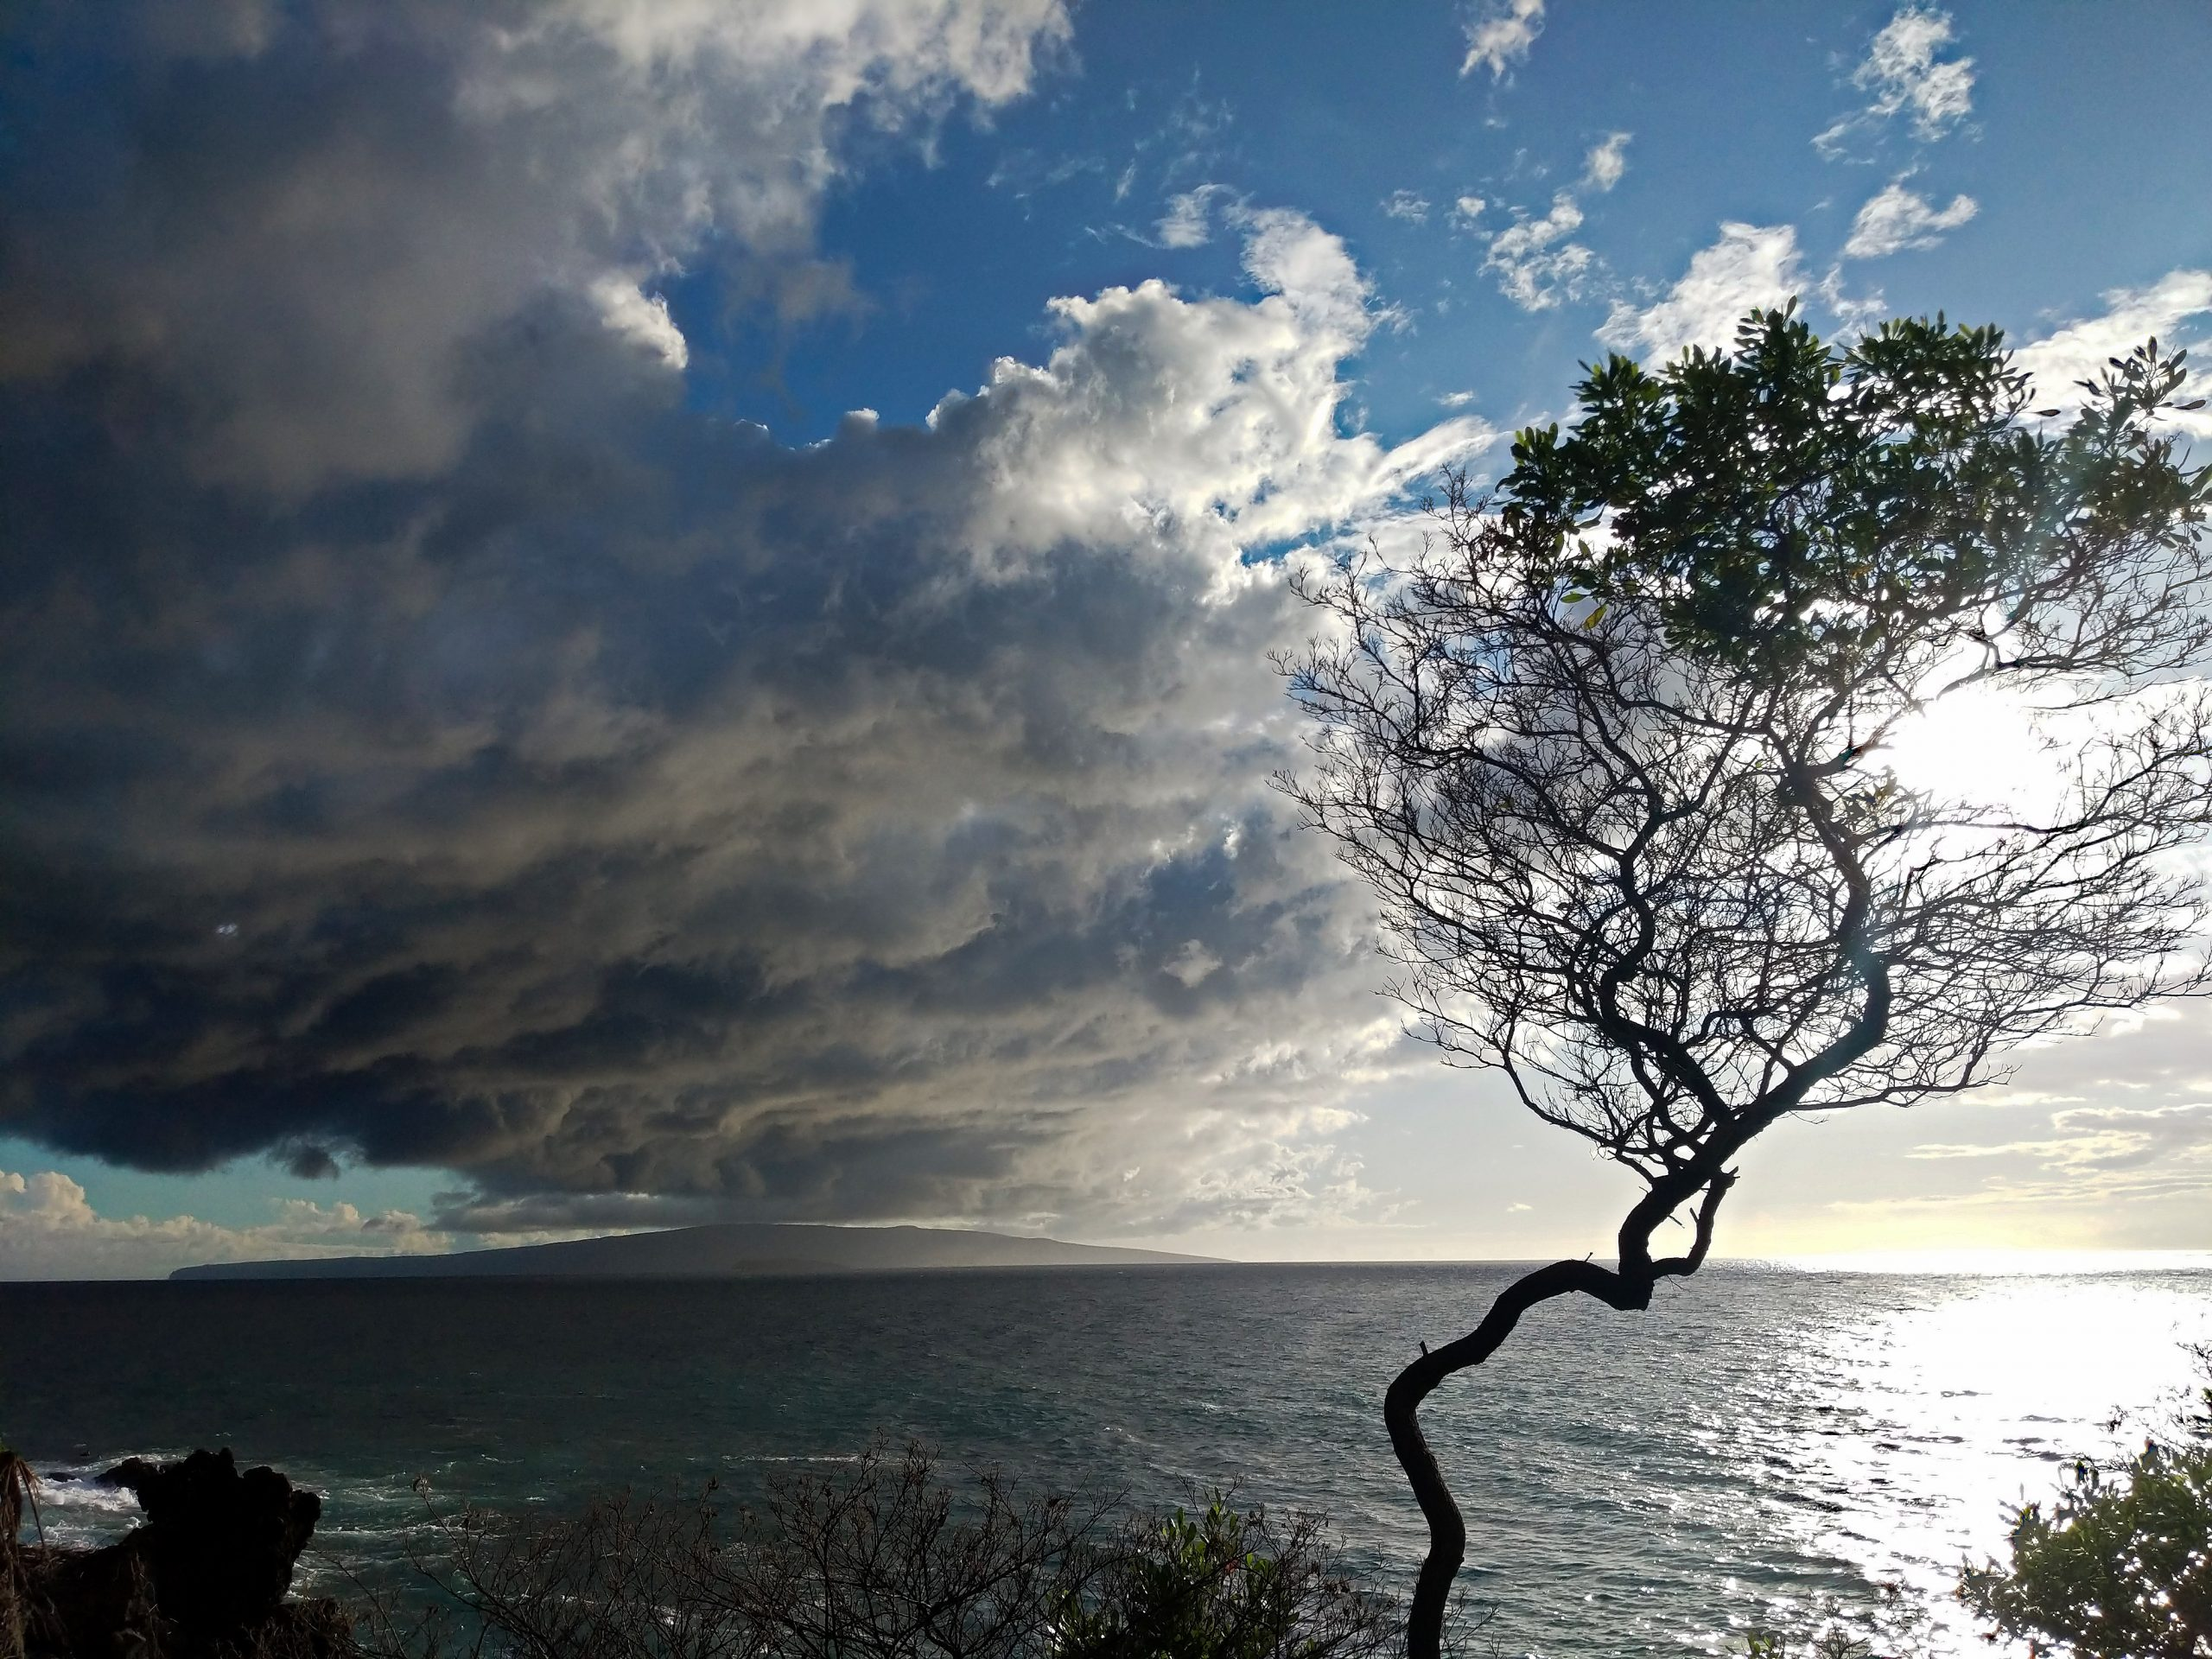 Incoming Storm at Wailea Beach